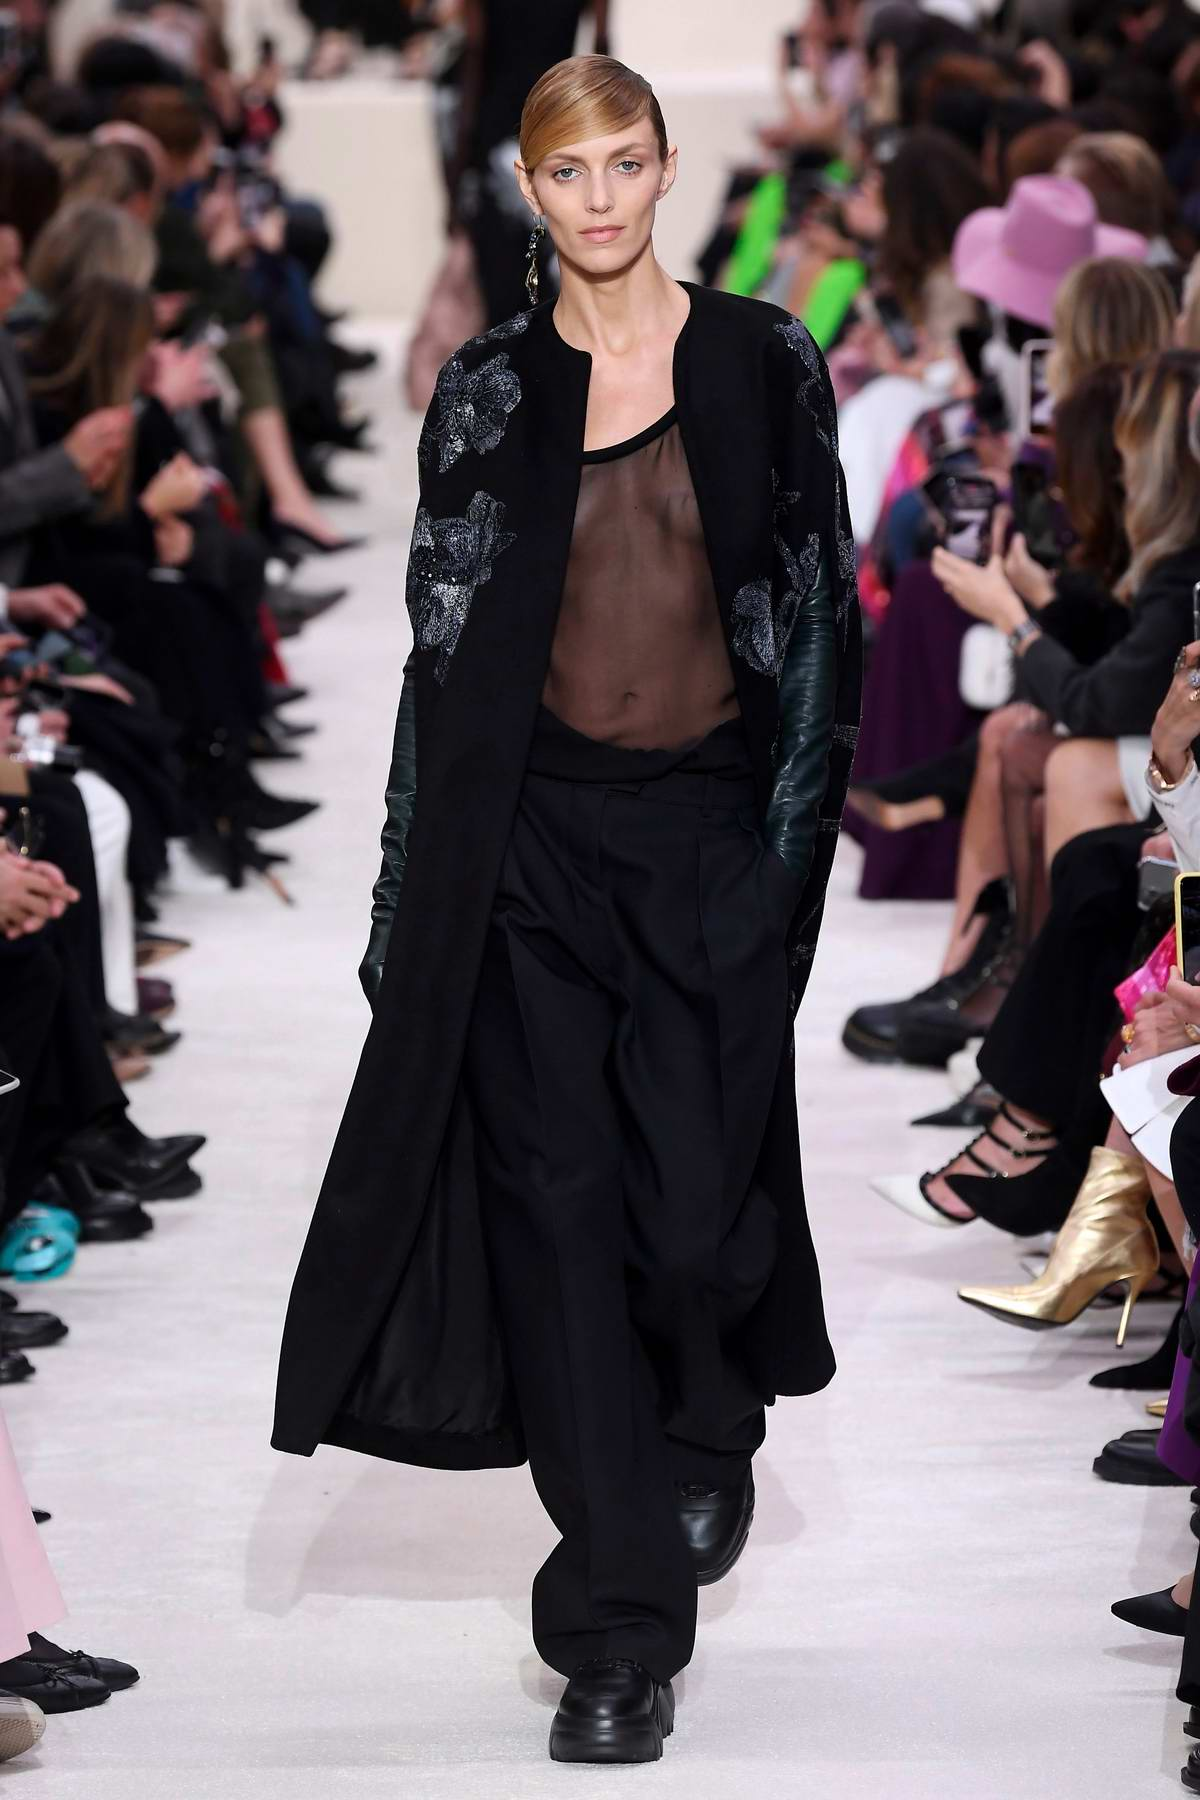 Anja Rubik walks the runway at Valentino show, F/W 2020 during Paris Fashion Week in Paris, France